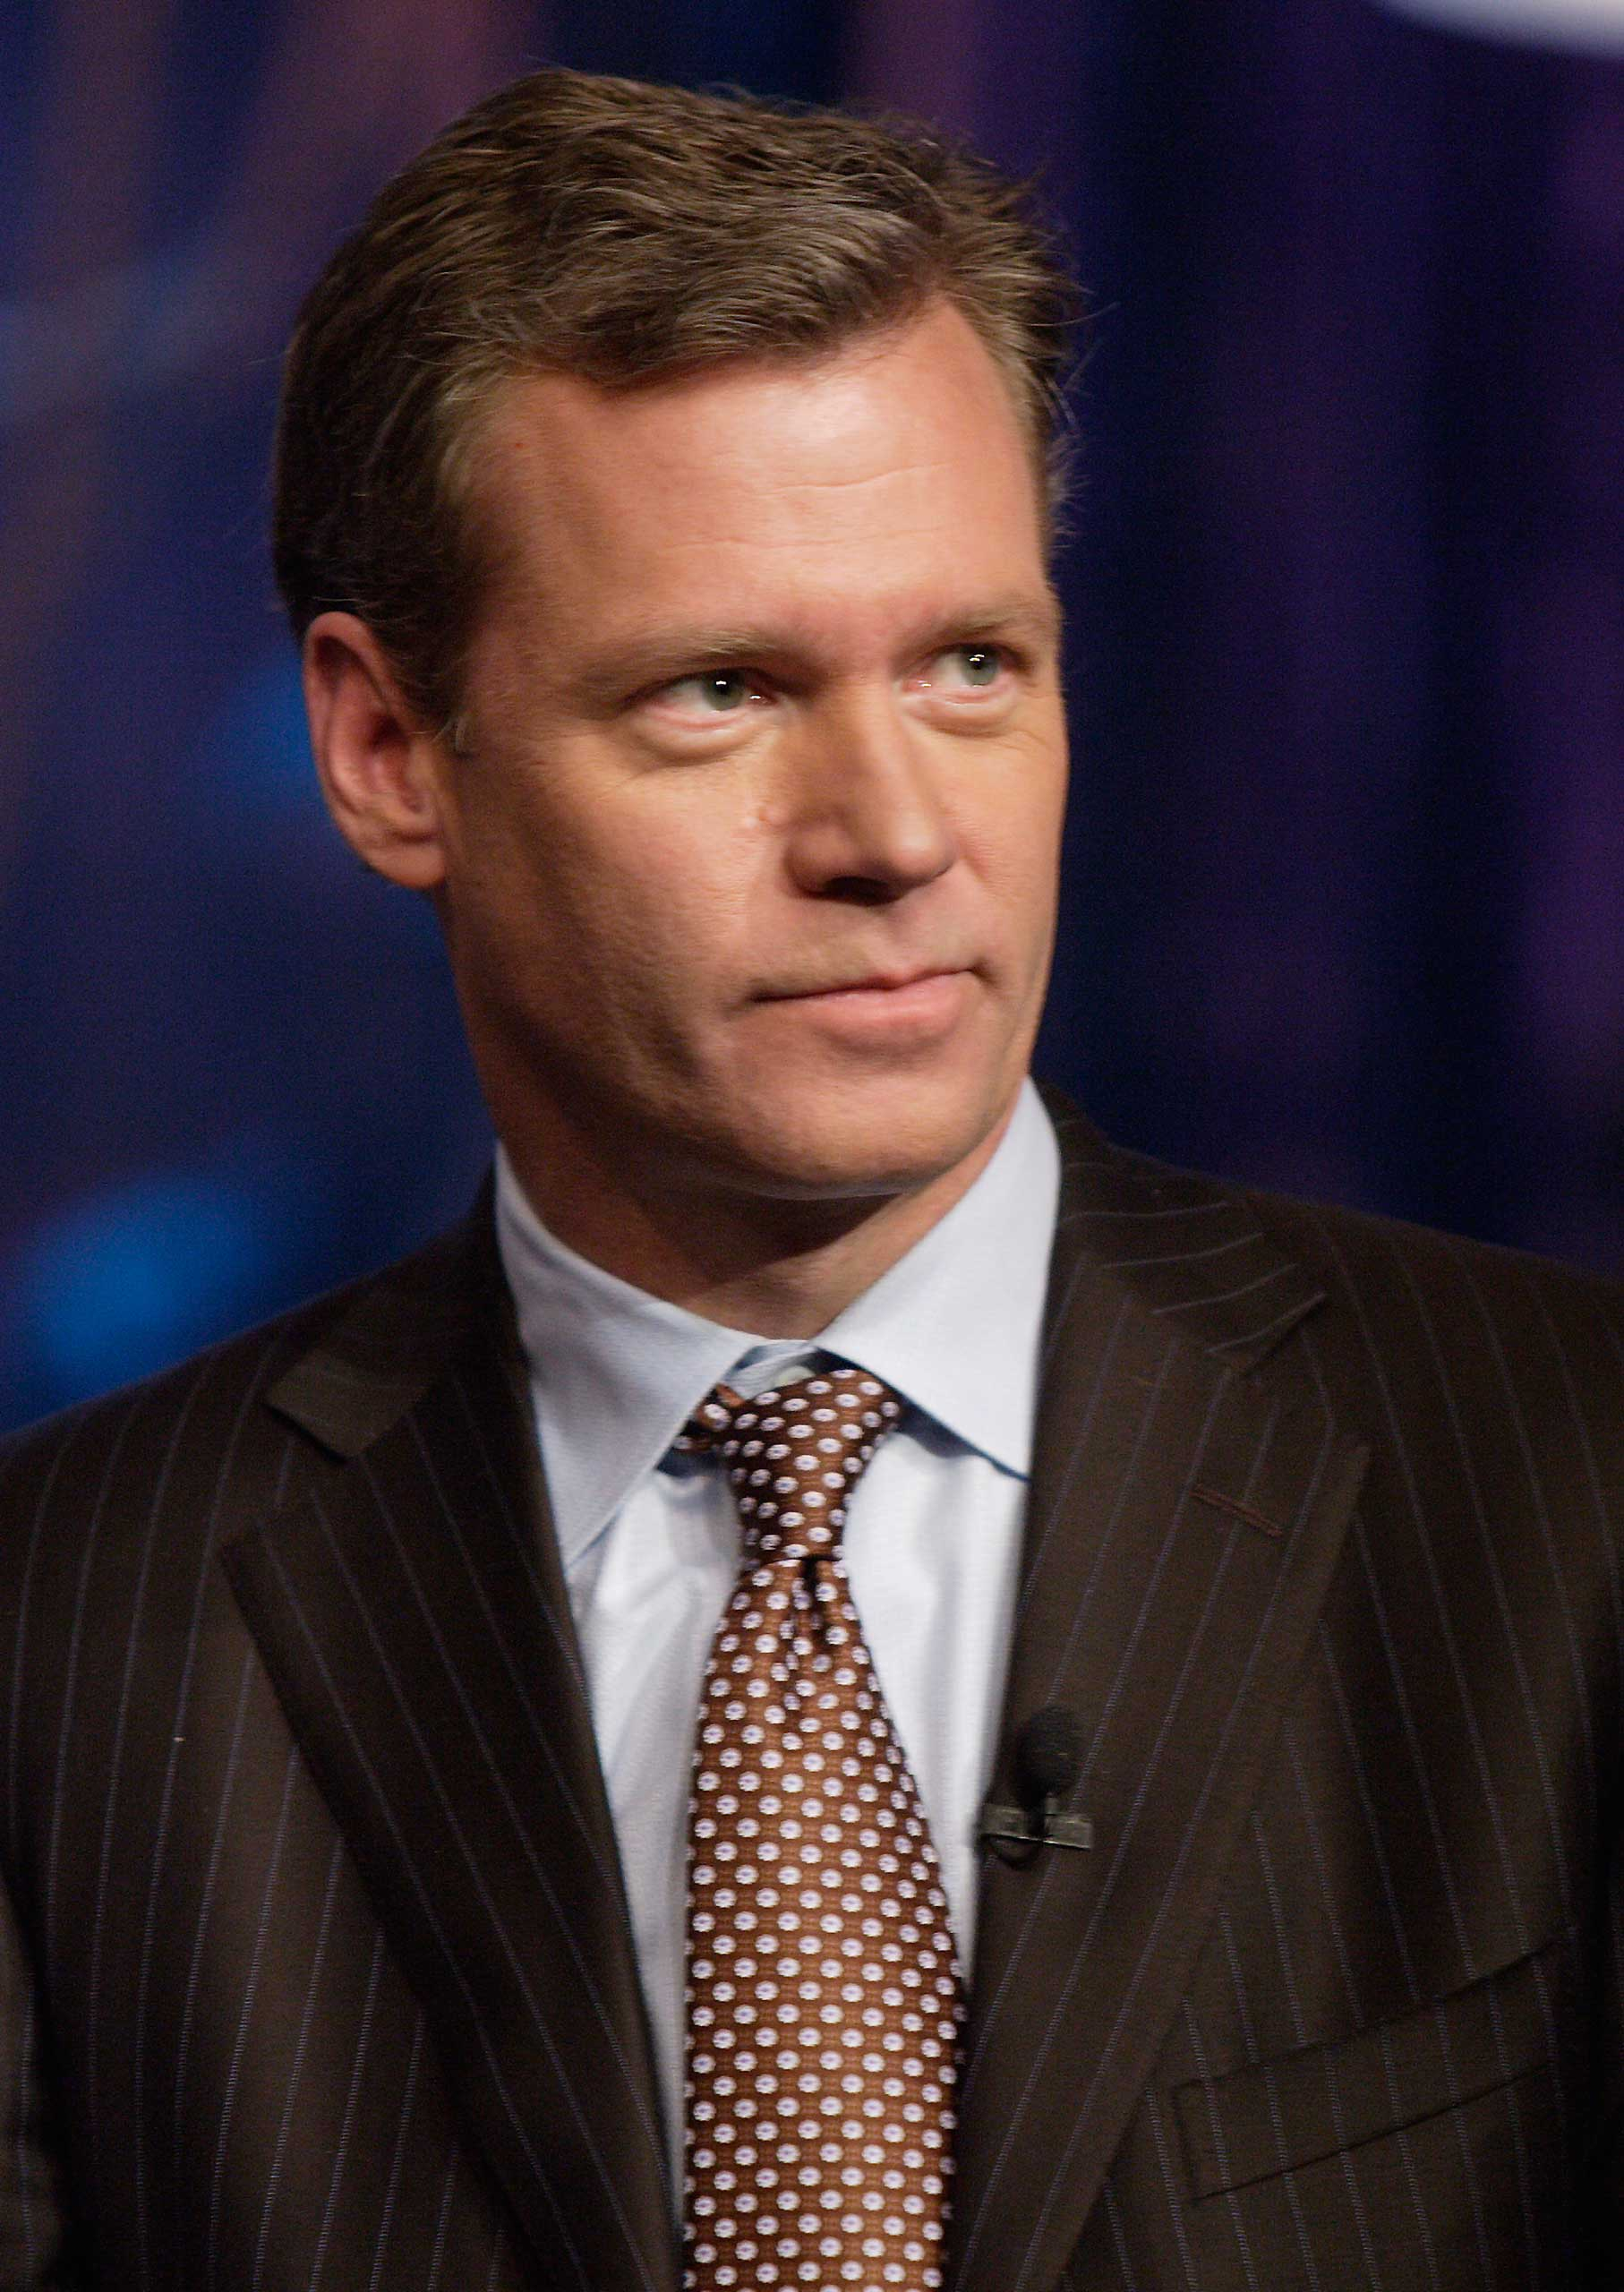 Chris Hansen in 2007.